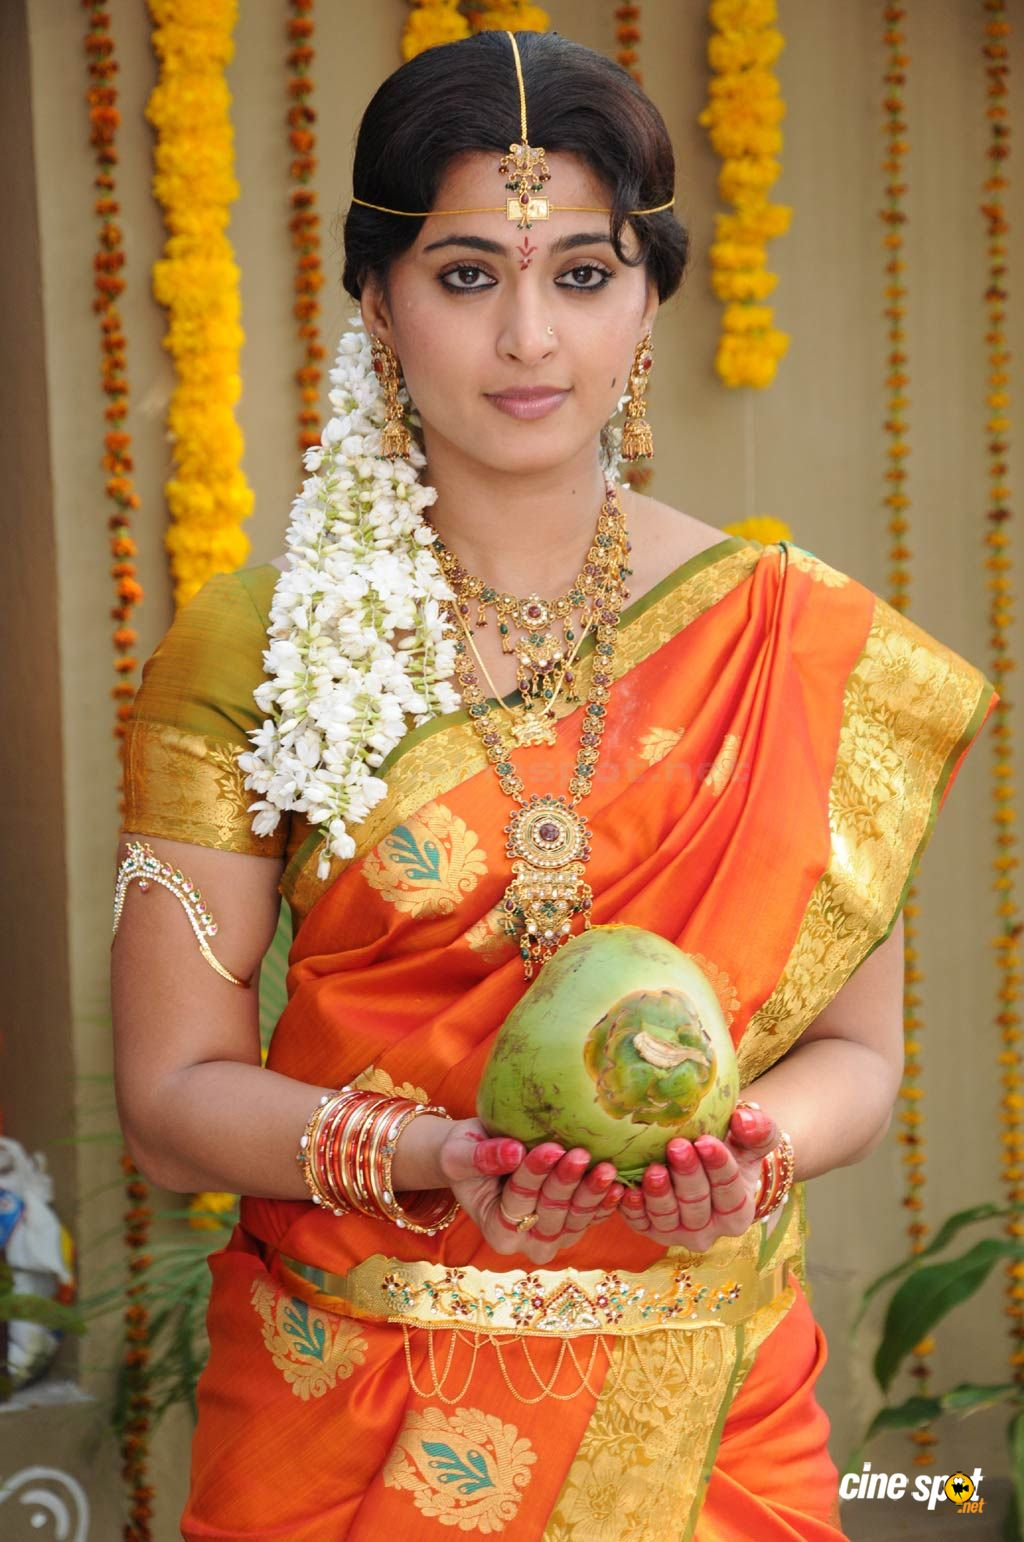 ADV 10: Anushka sexy photo, Anushka Telugu Actress Anushka New Movies Sexy Photo